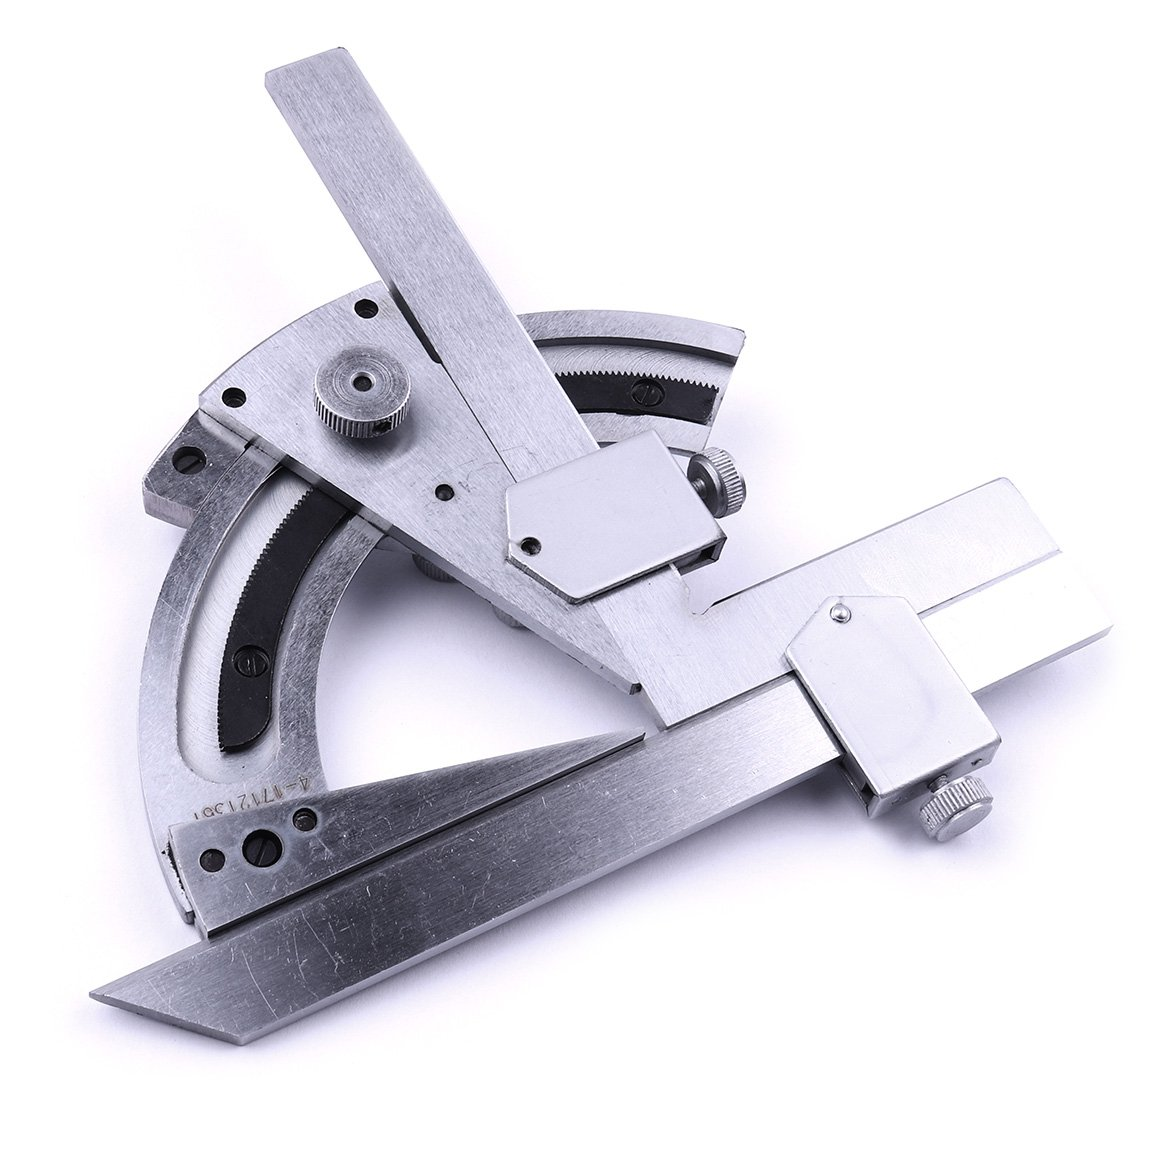 Atoplee Metric Middle Size Micrometer Head 0-25*0.01mm